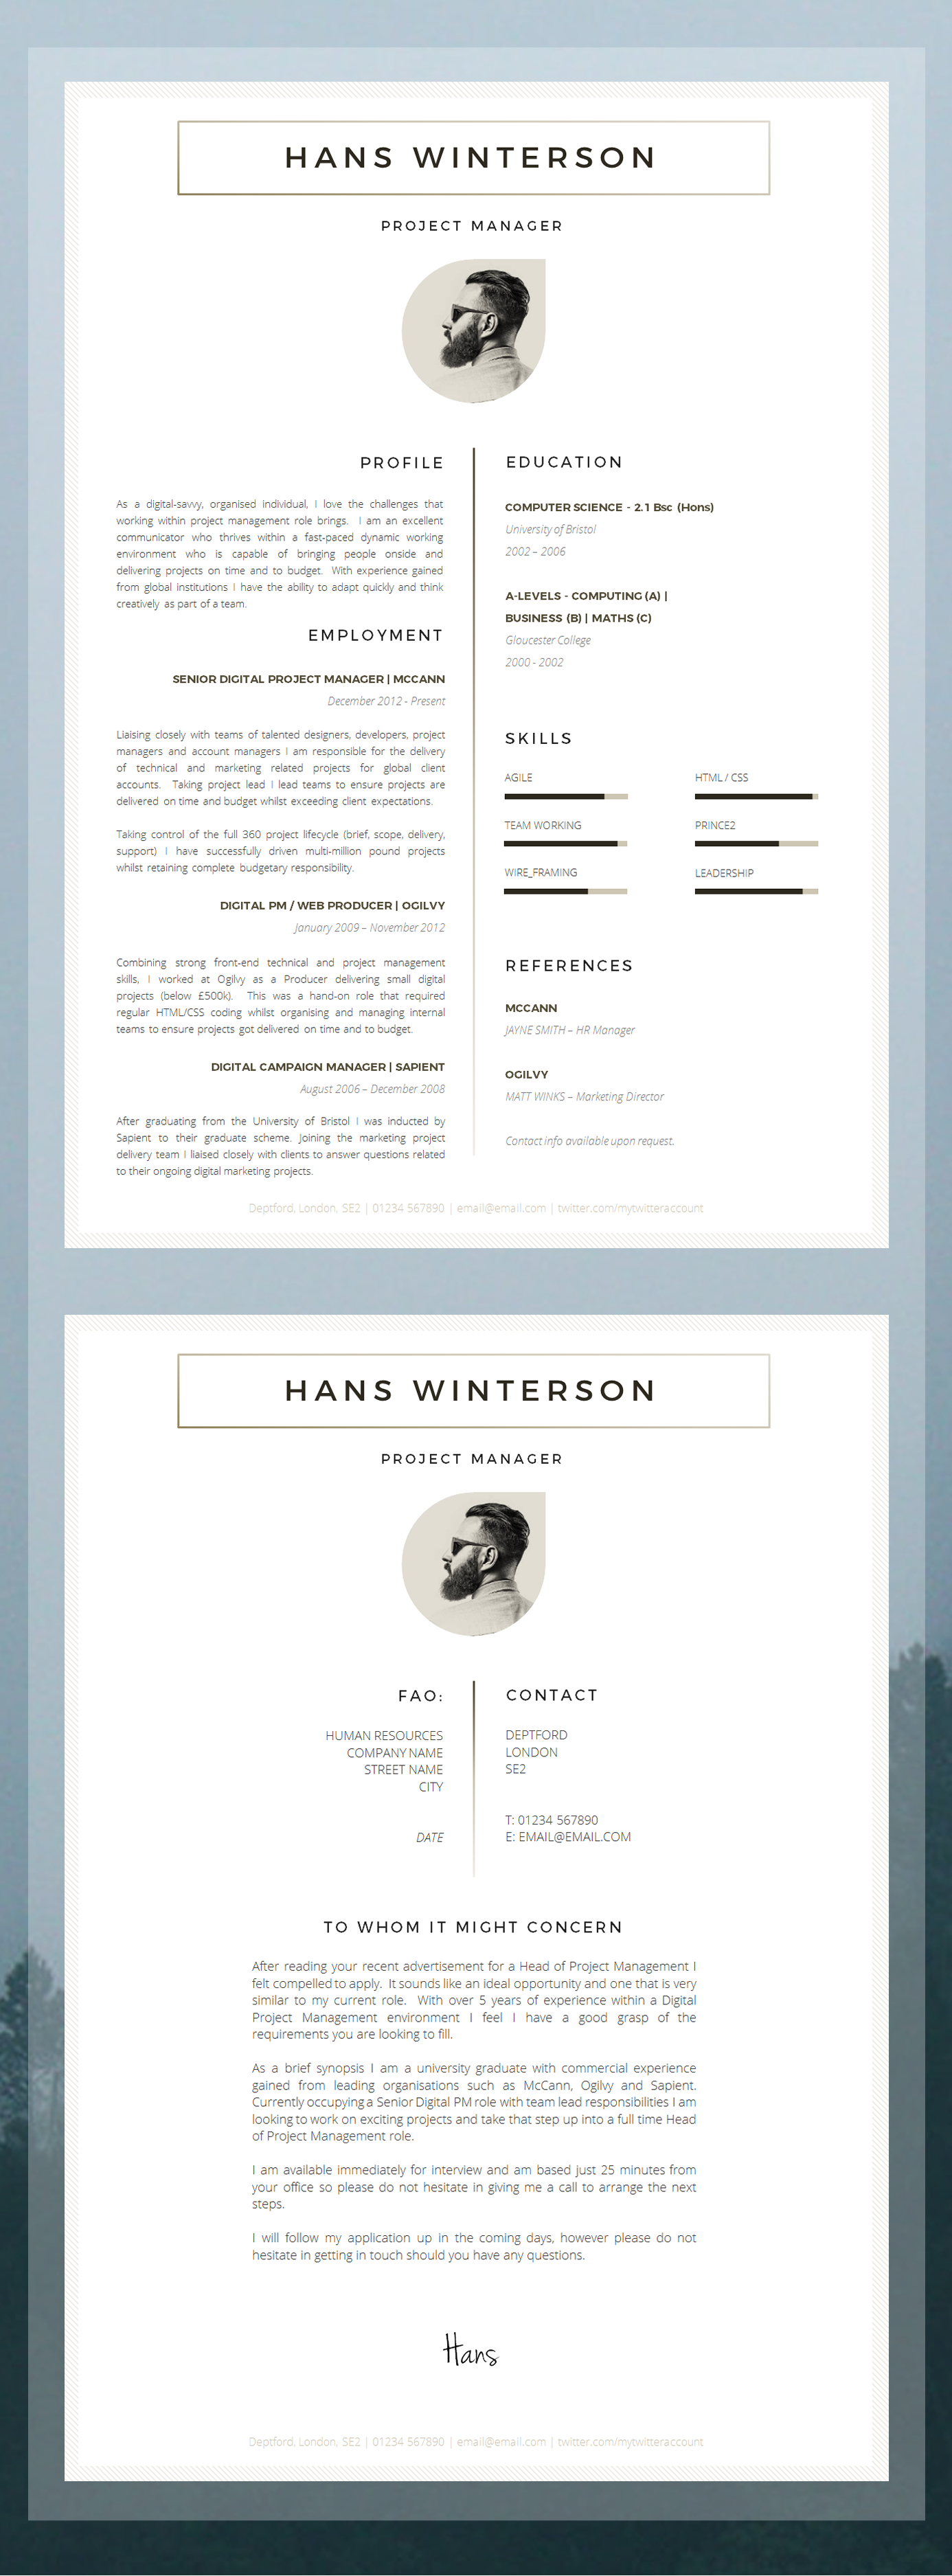 Professional CV Template Download This Professional Resume Template · Creative  Resume Profile Ideas